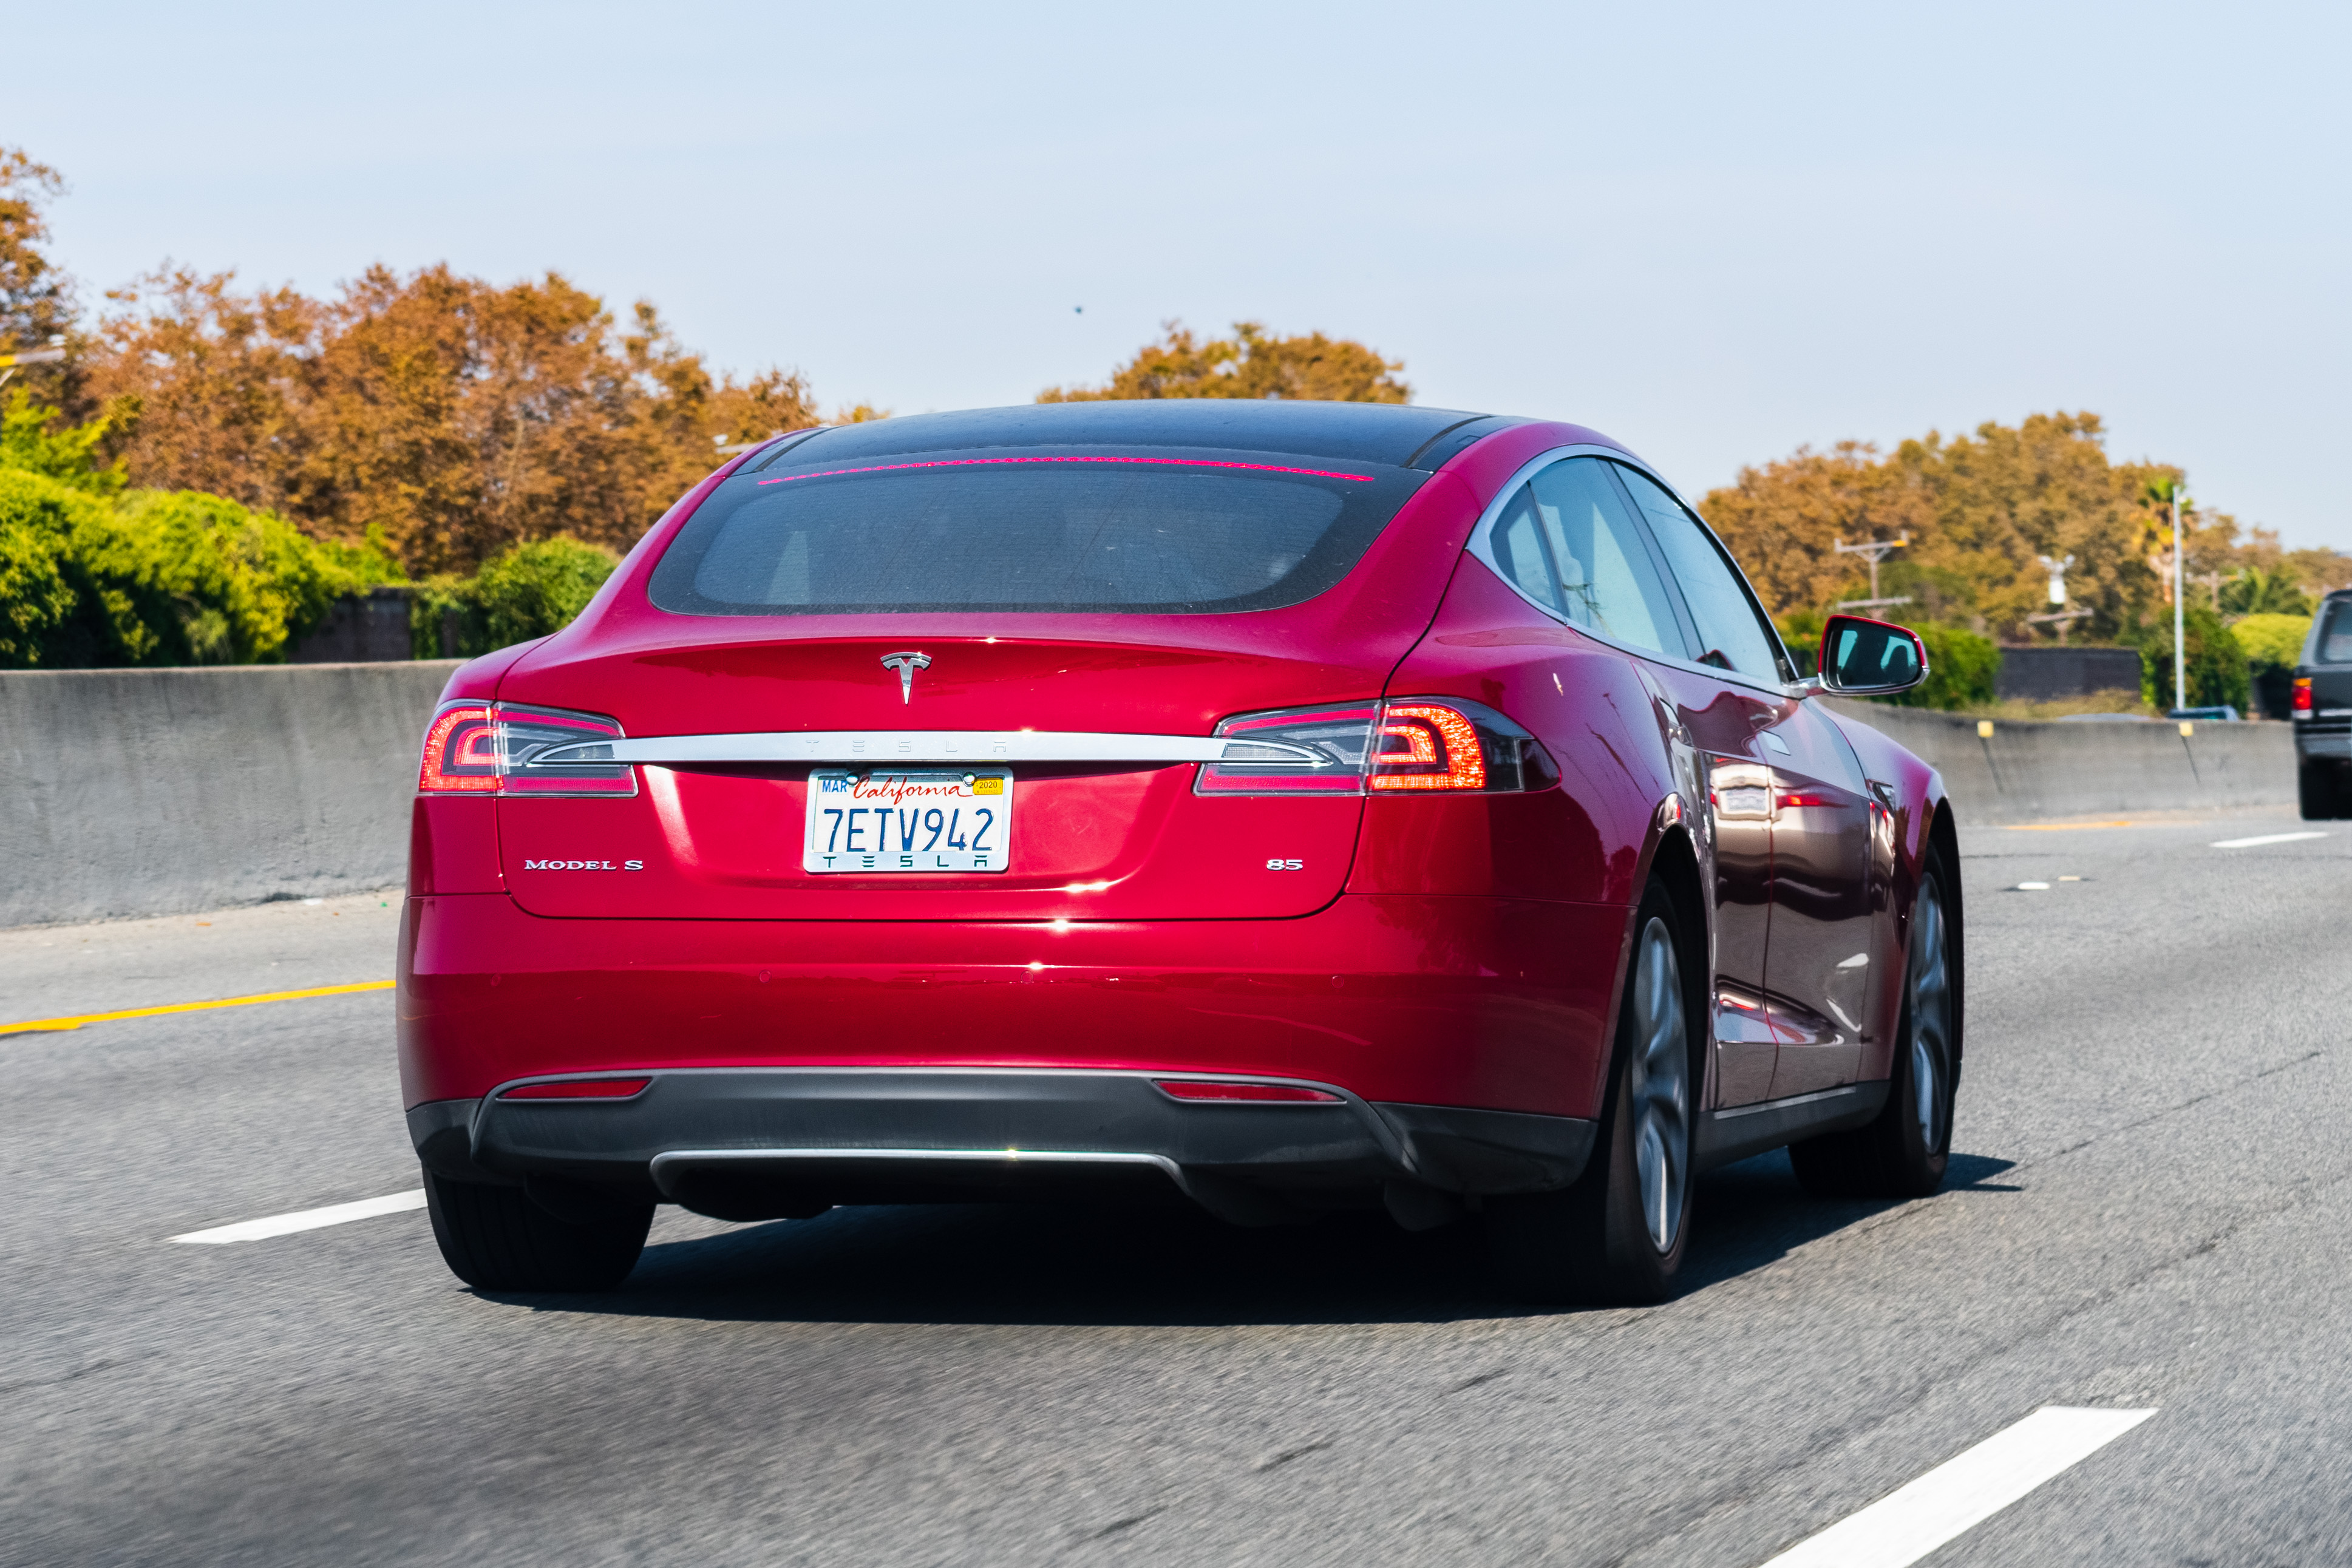 A Tesla Model S driving on the freeway in Silicon Valley.